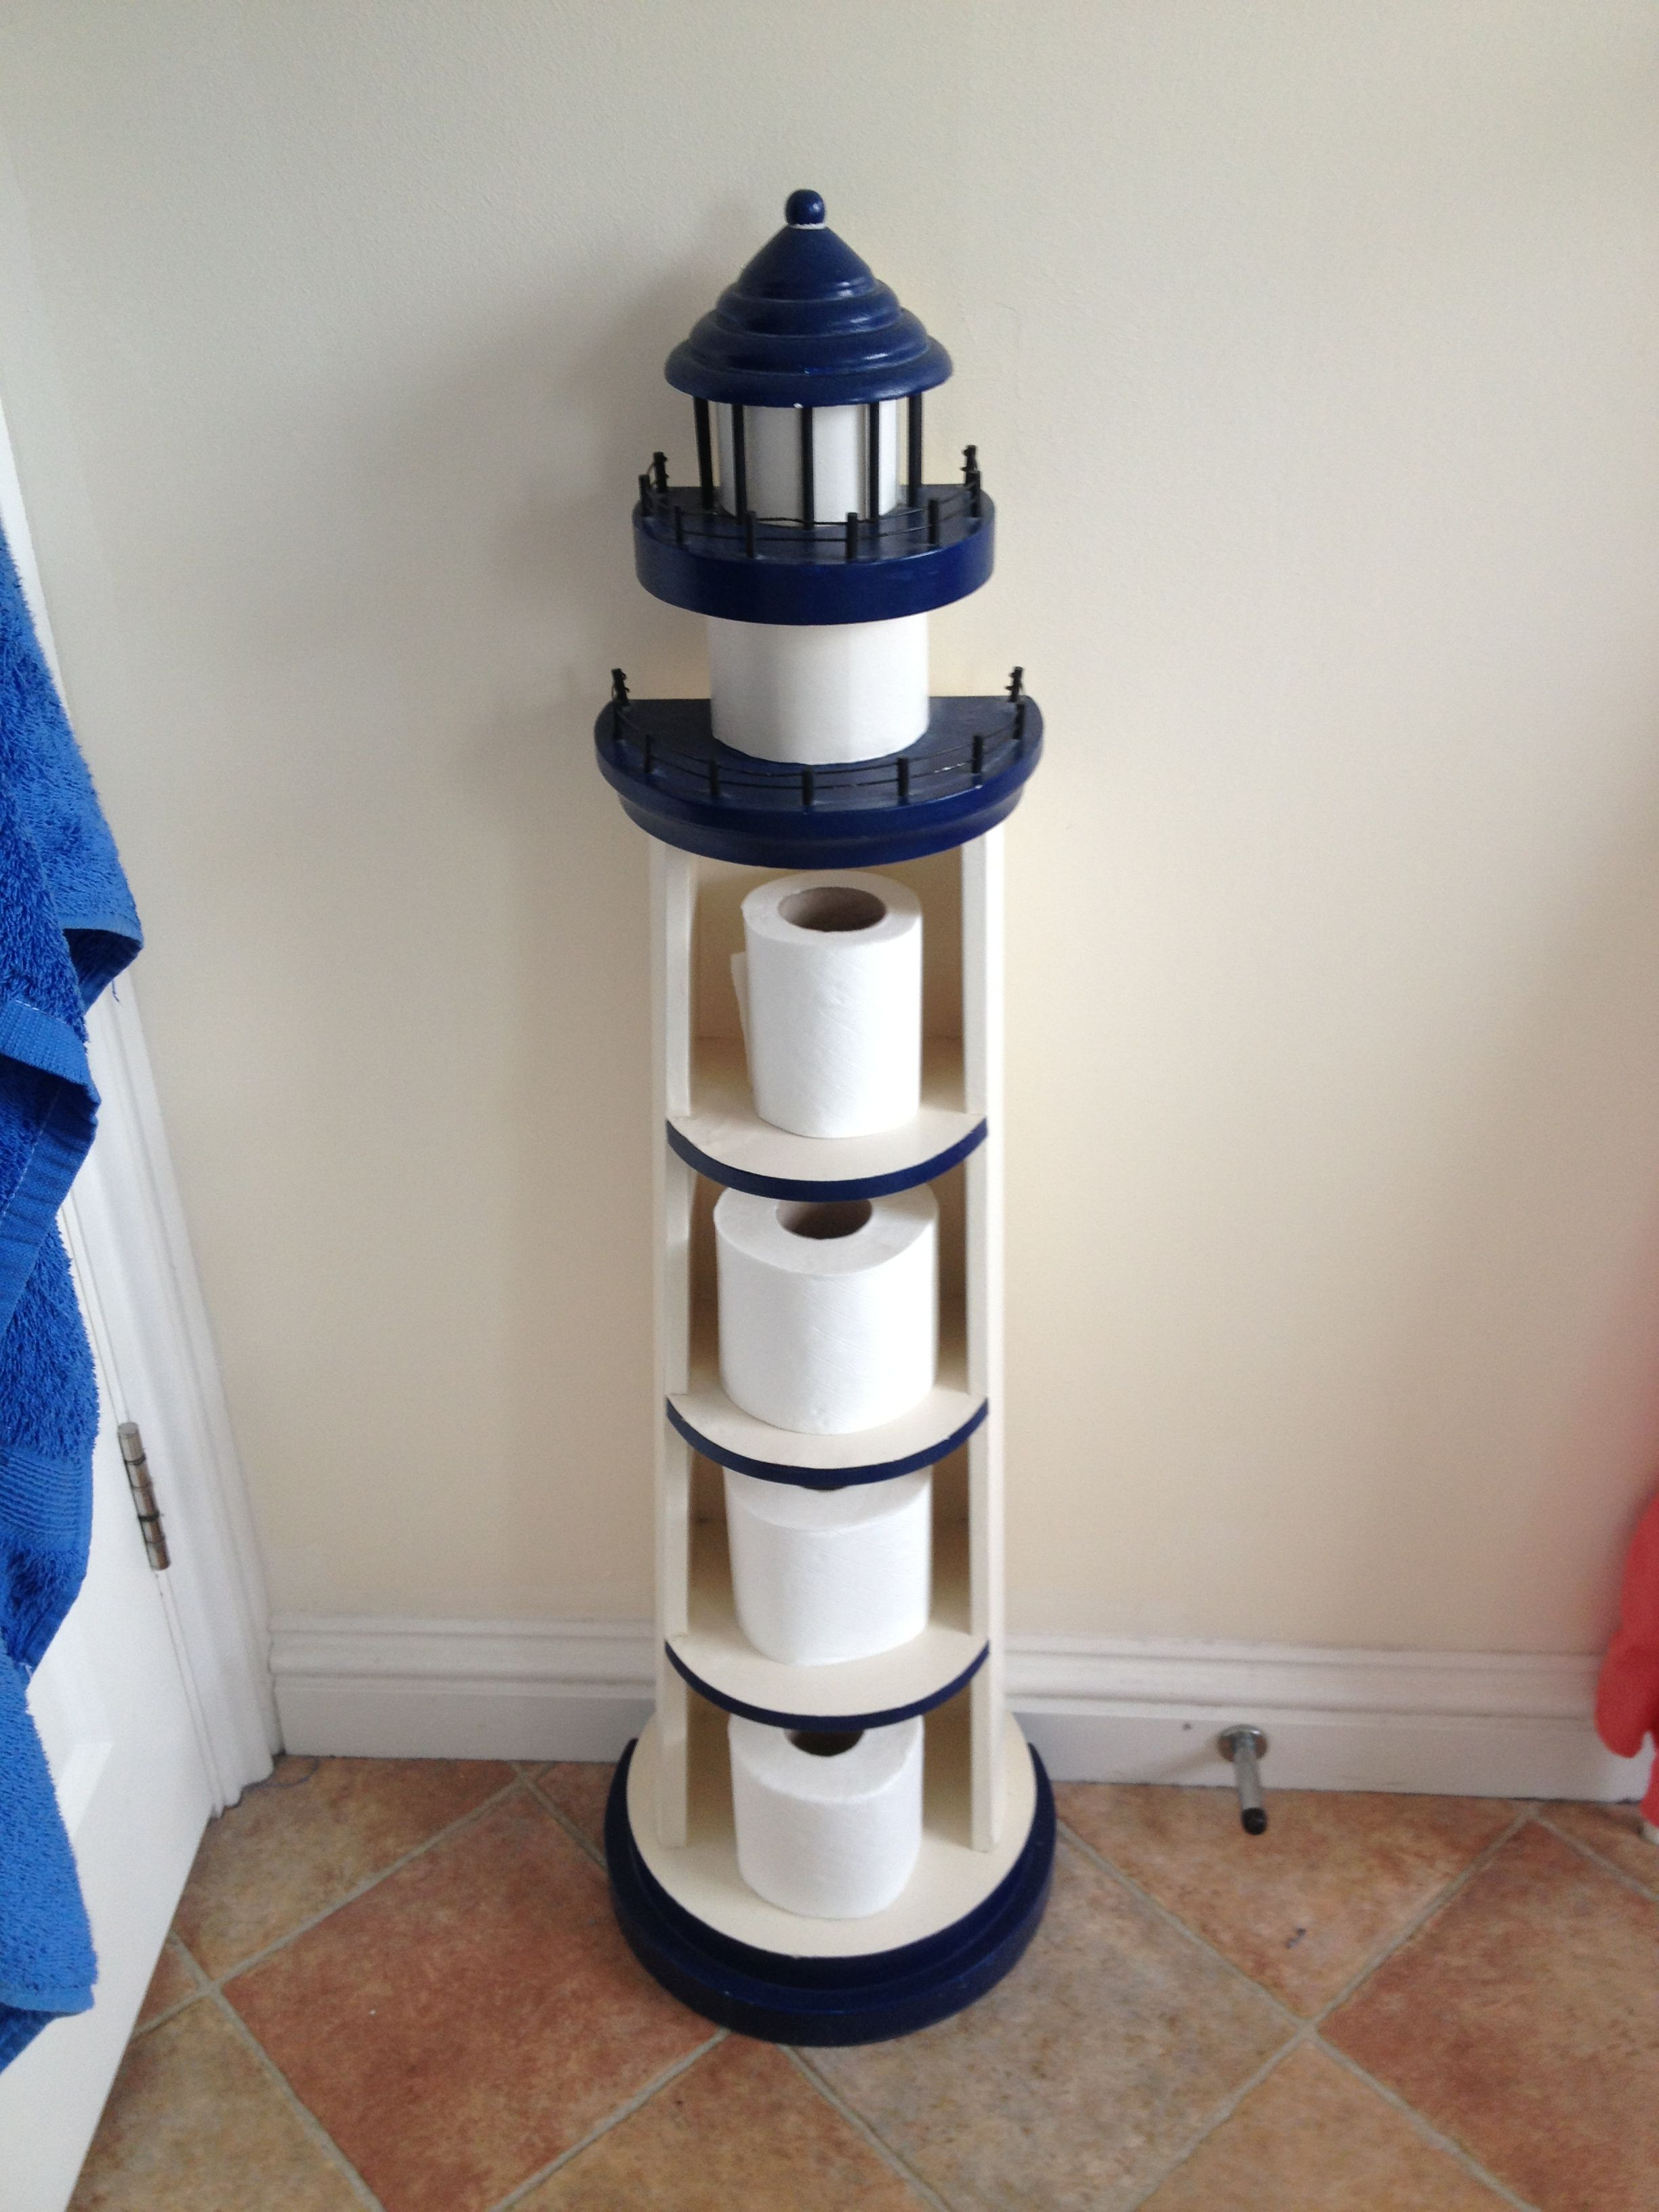 Lighthouse Toilet Paper Holder Toilet Paper Rolls Nautical Bathroom Decor Lighthouse Decor Nautical Bathrooms